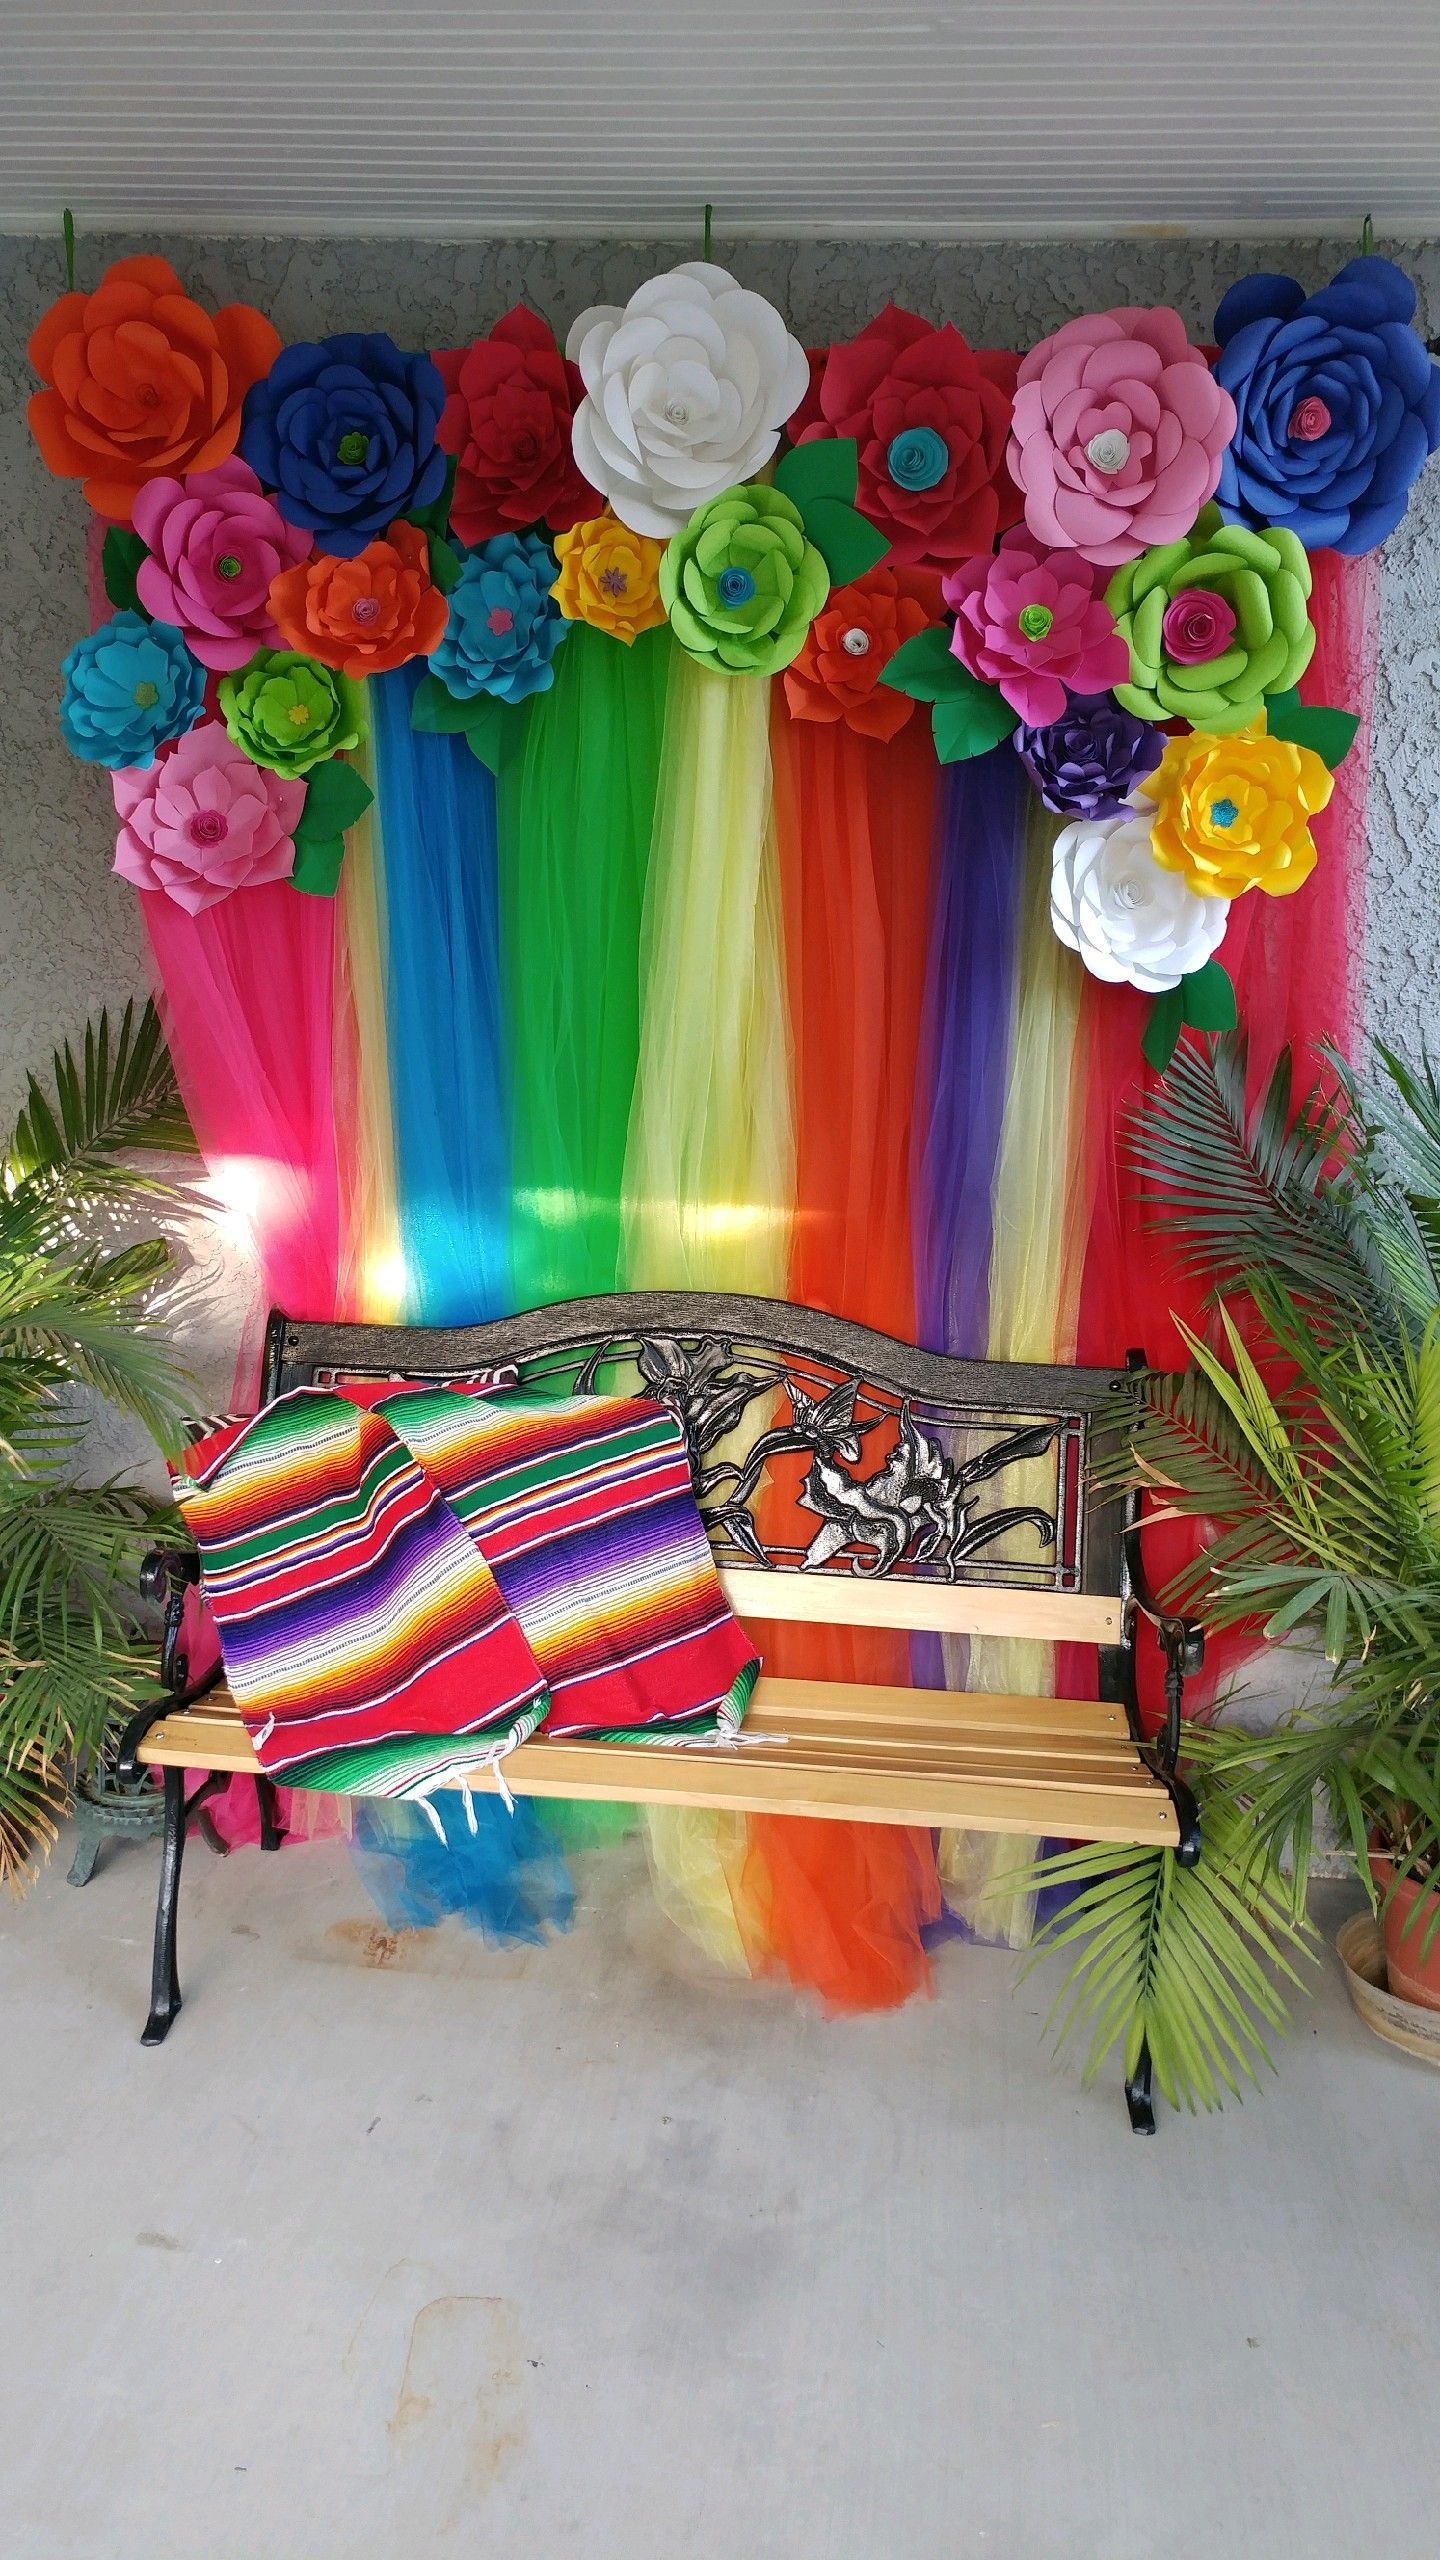 Pin By Ruth Holler On Decoracion Para Fiestas De Cumpleanos Mexican Party Theme Mexican Birthday Parties Mexican Party Decorations